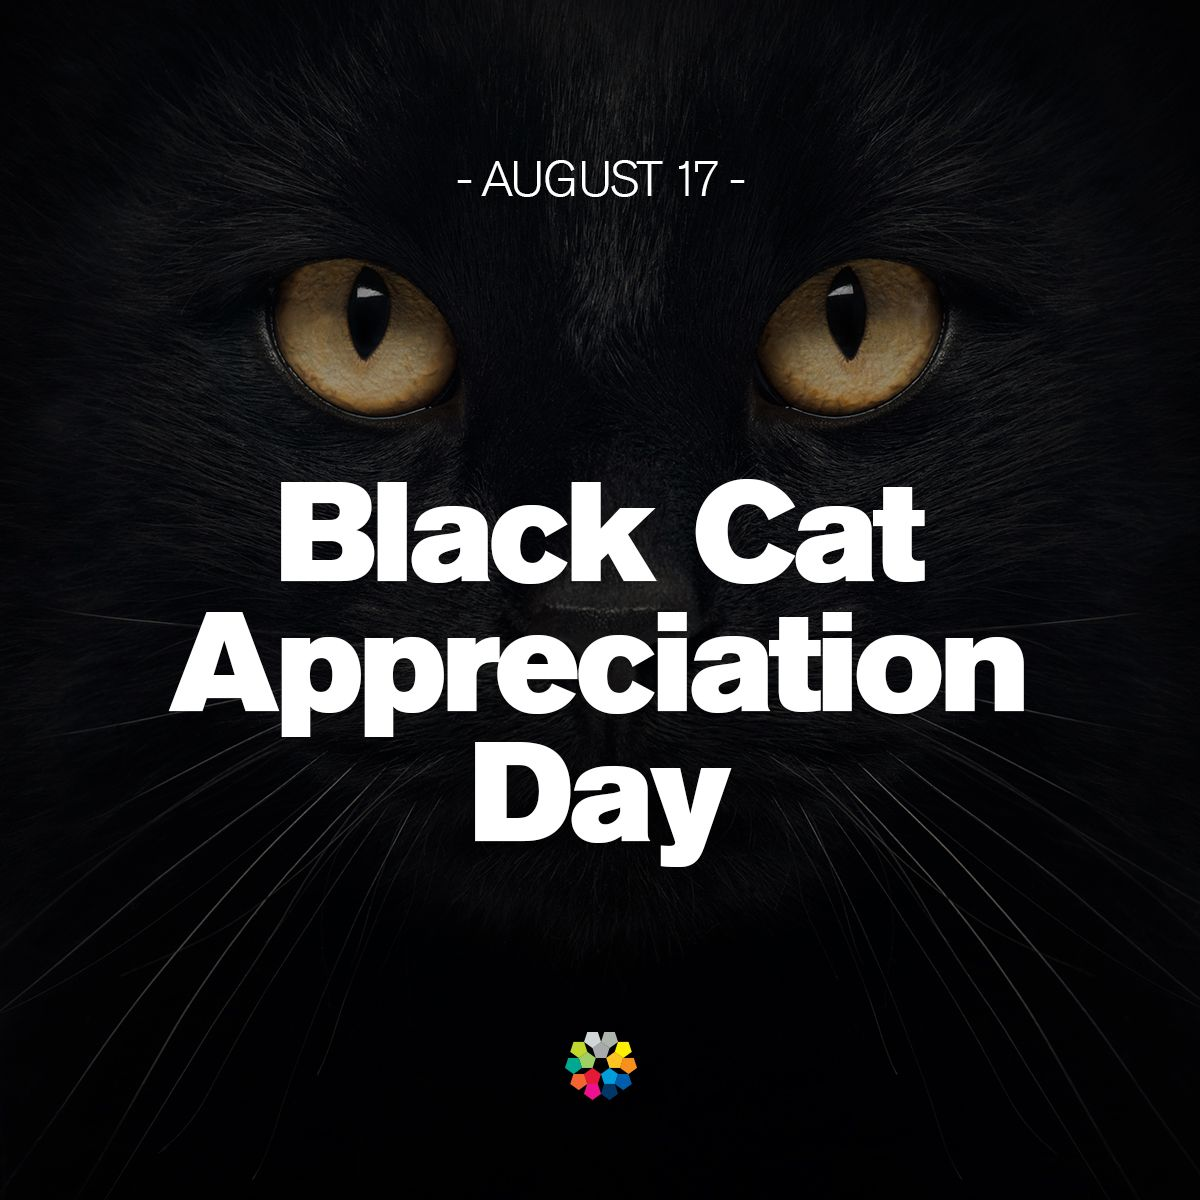 National Black Cat Appreciation Day is today. Let's hear